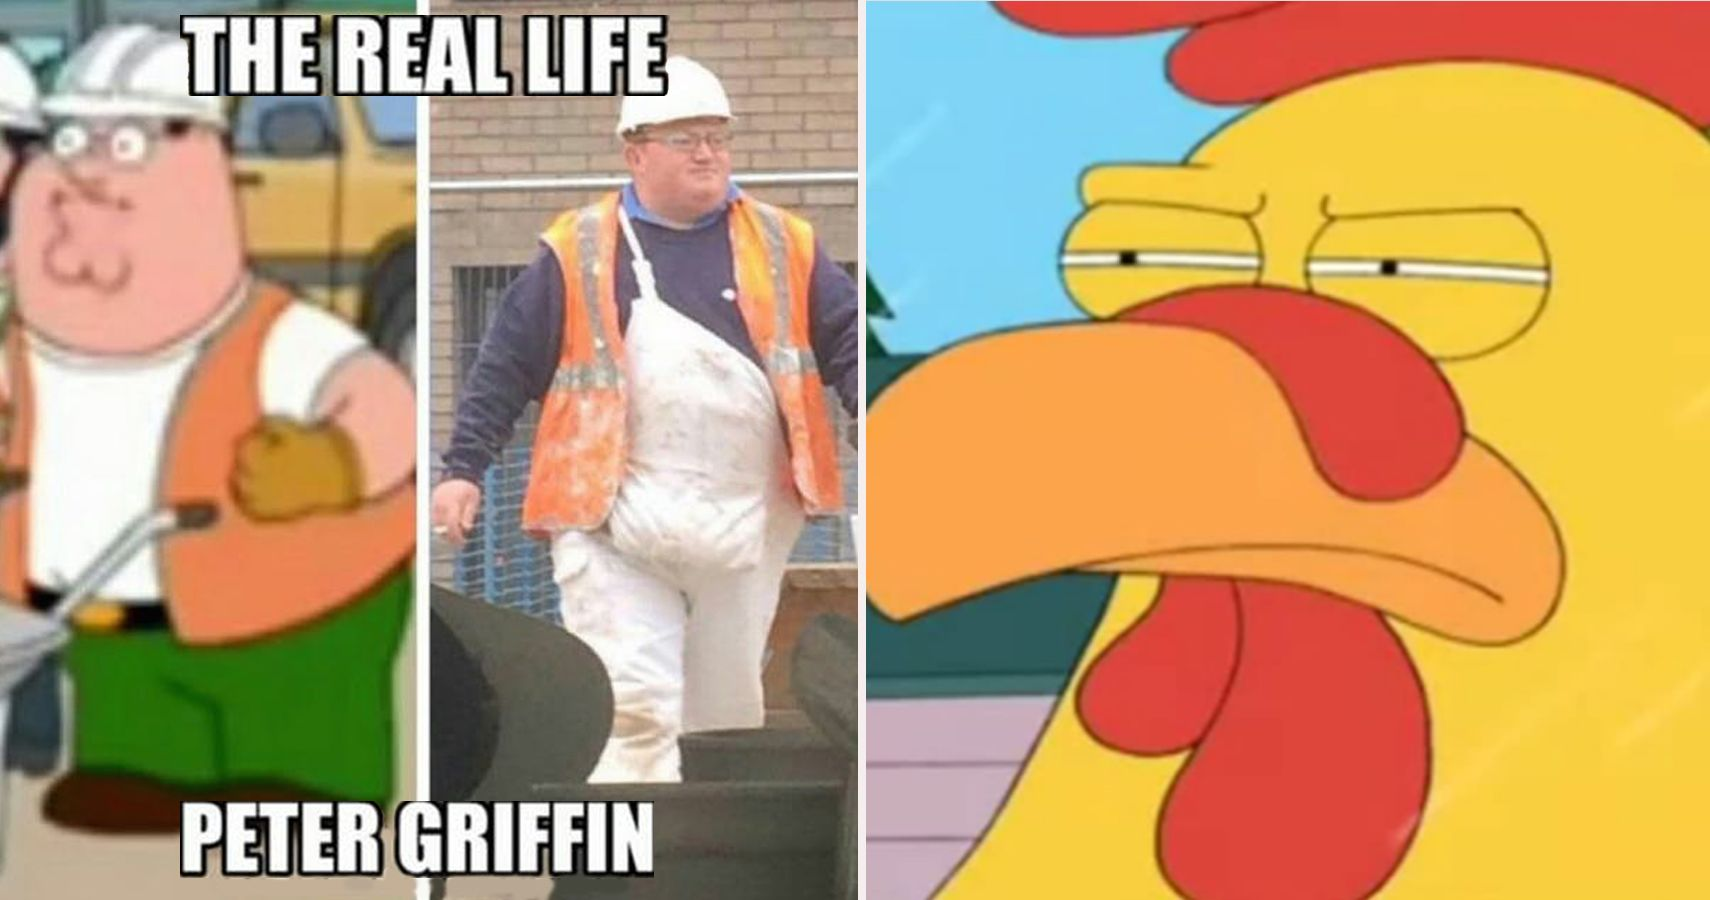 20 Hilarious Family Guy Memes That Would Make Even Stewie Laugh